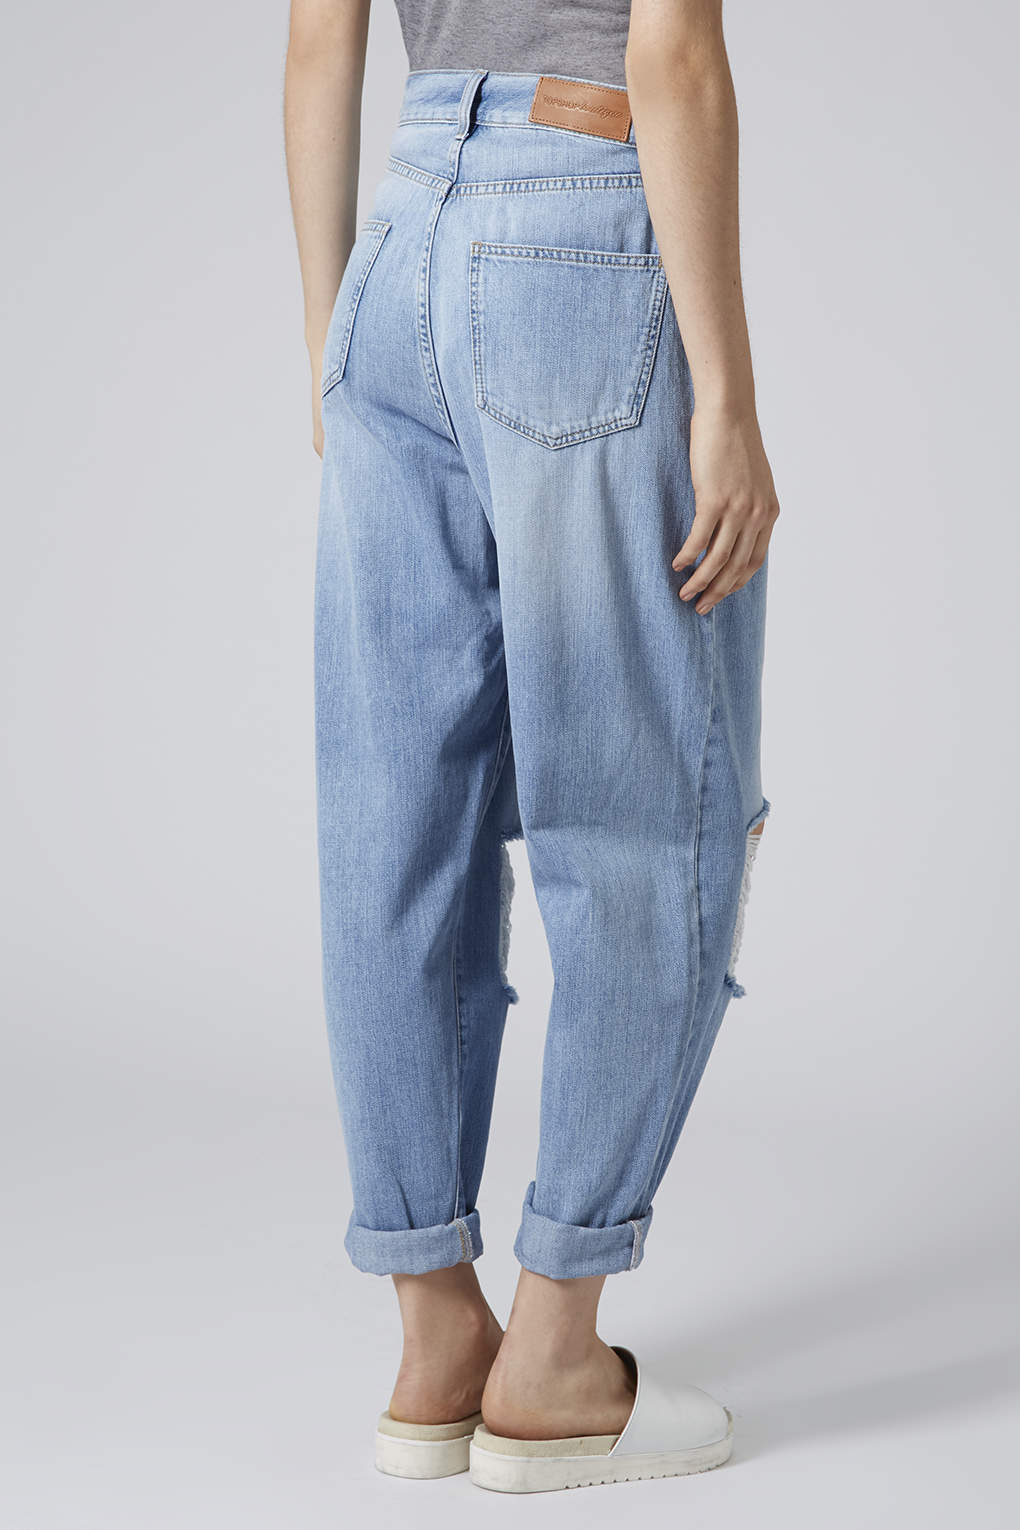 TOPSHOP Surf Ripped Baggy Jeans in Blue - Lyst